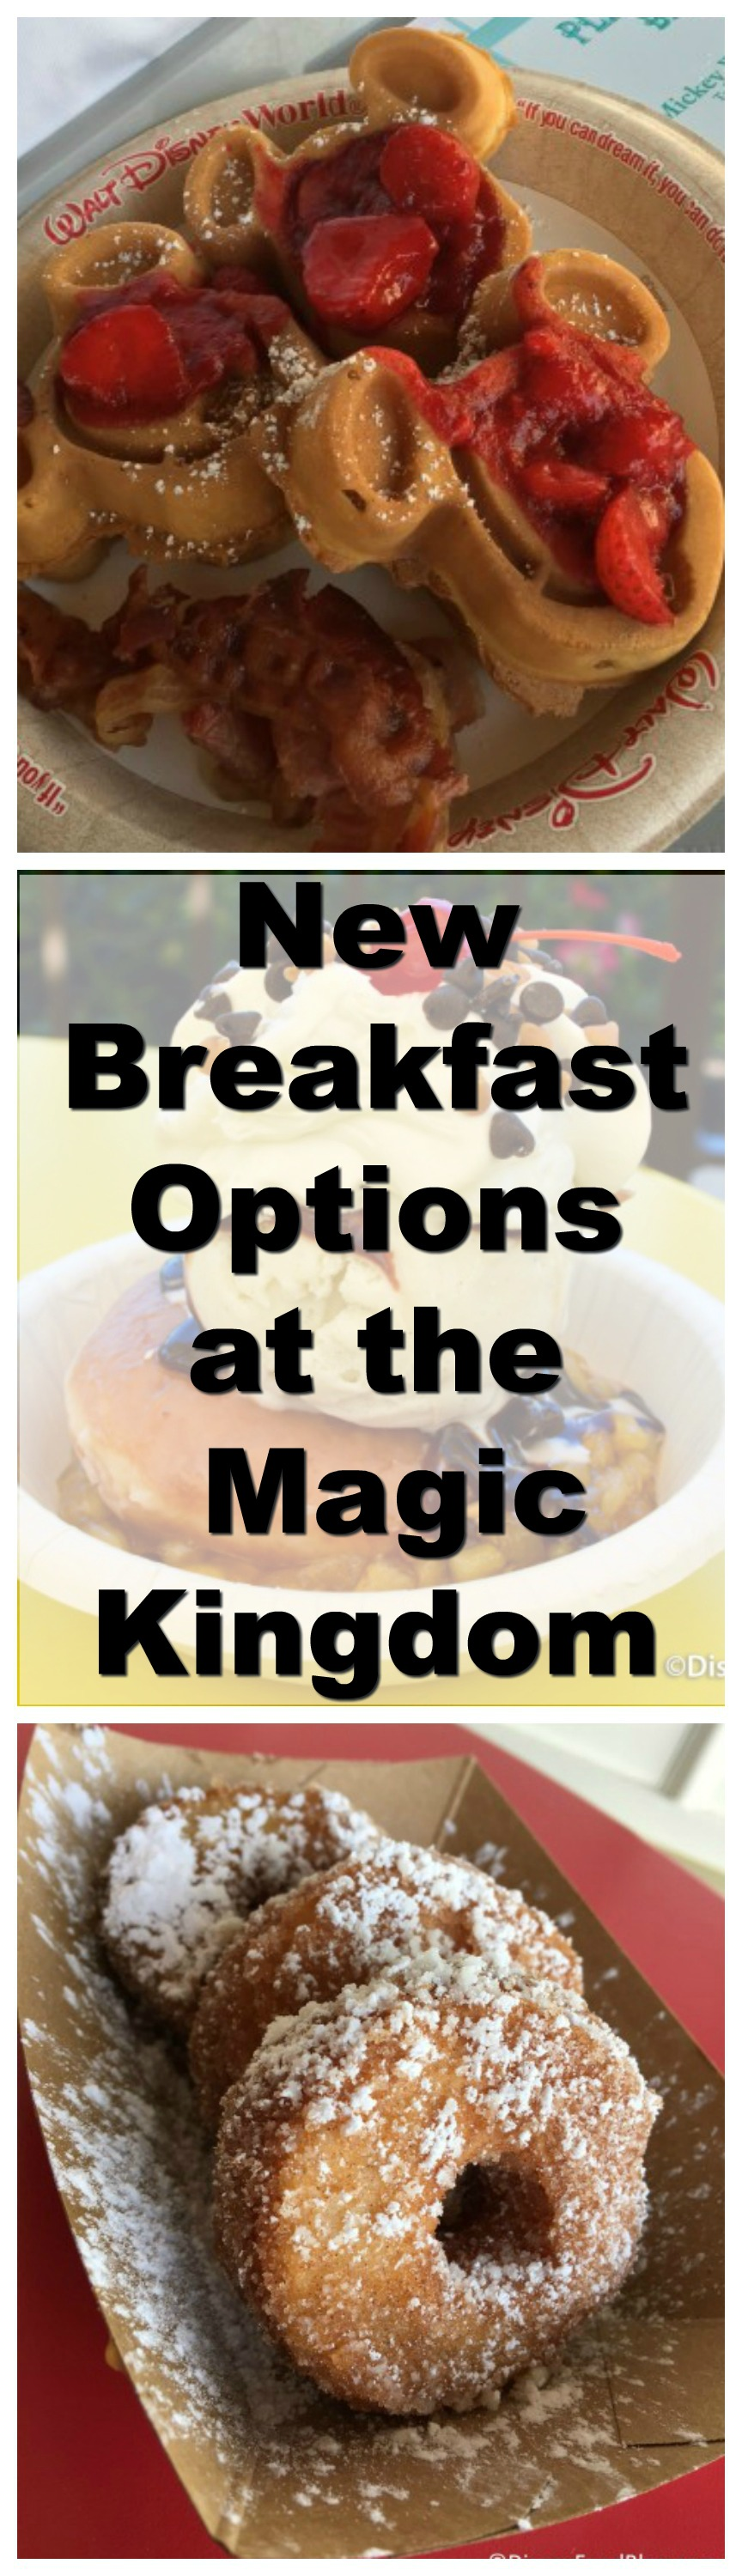 Take a Look at the New Breakfast Options Available at Disney World's Magic Kingdom!